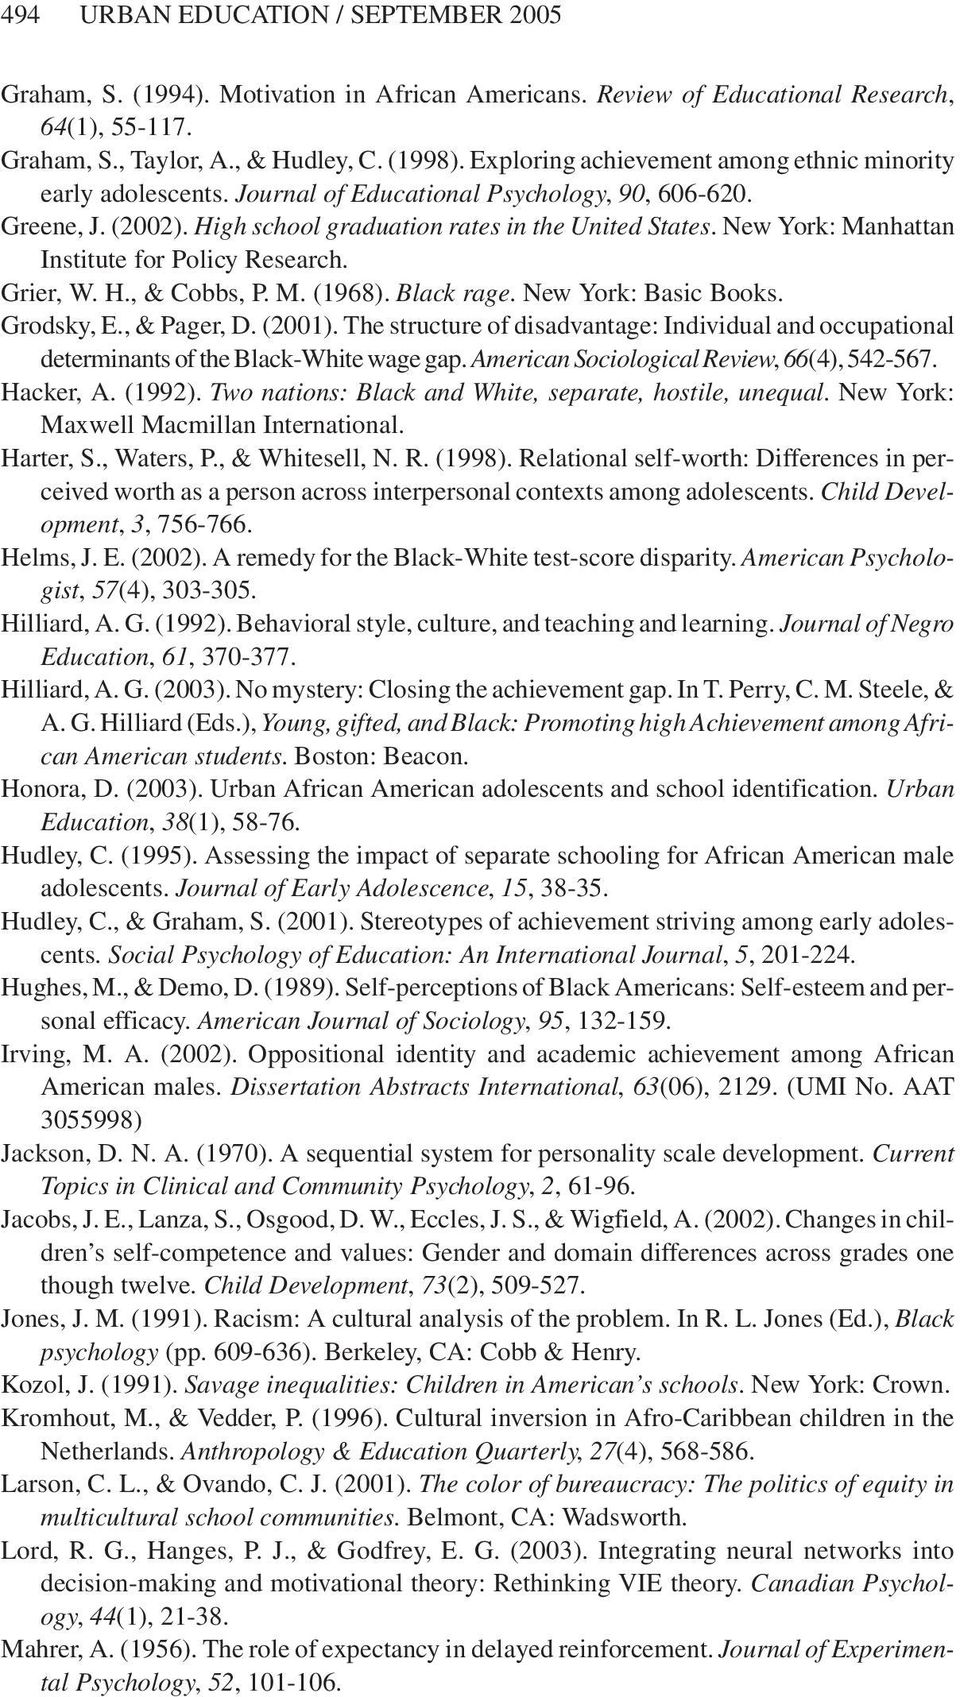 New York: Manhattan Institute for Policy Research. Grier, W. H., & Cobbs, P. M. (1968). Black rage. New York: Basic Books. Grodsky, E., & Pager, D. (2001).